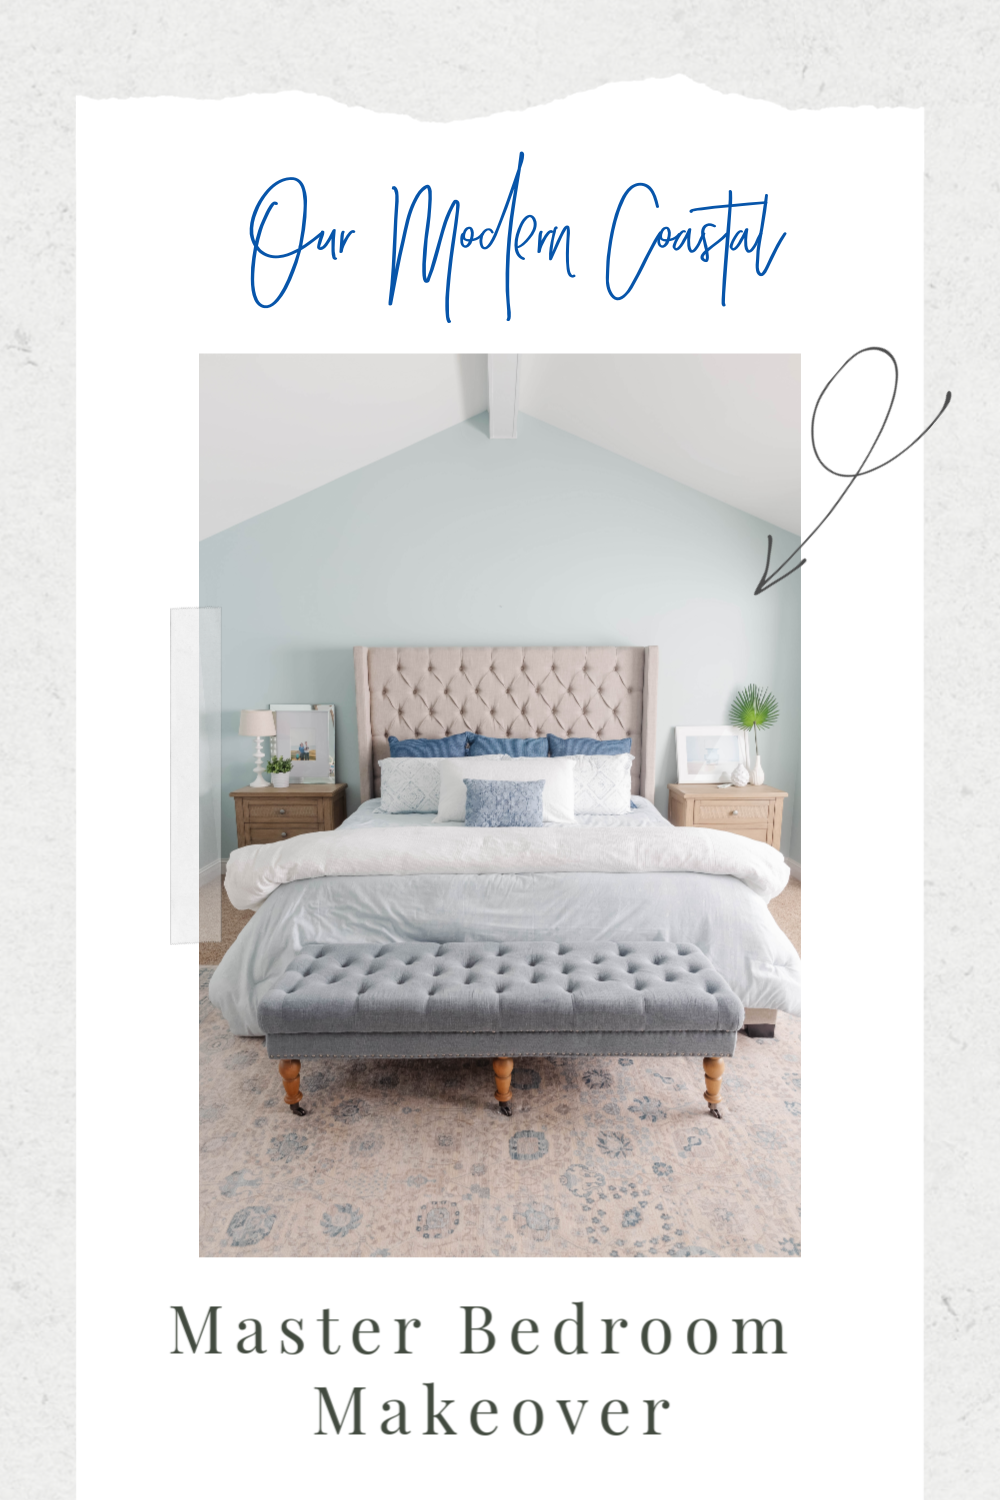 Our modern coastal bedroom makeover, full of soothing blues and whites and accented with natural elements.